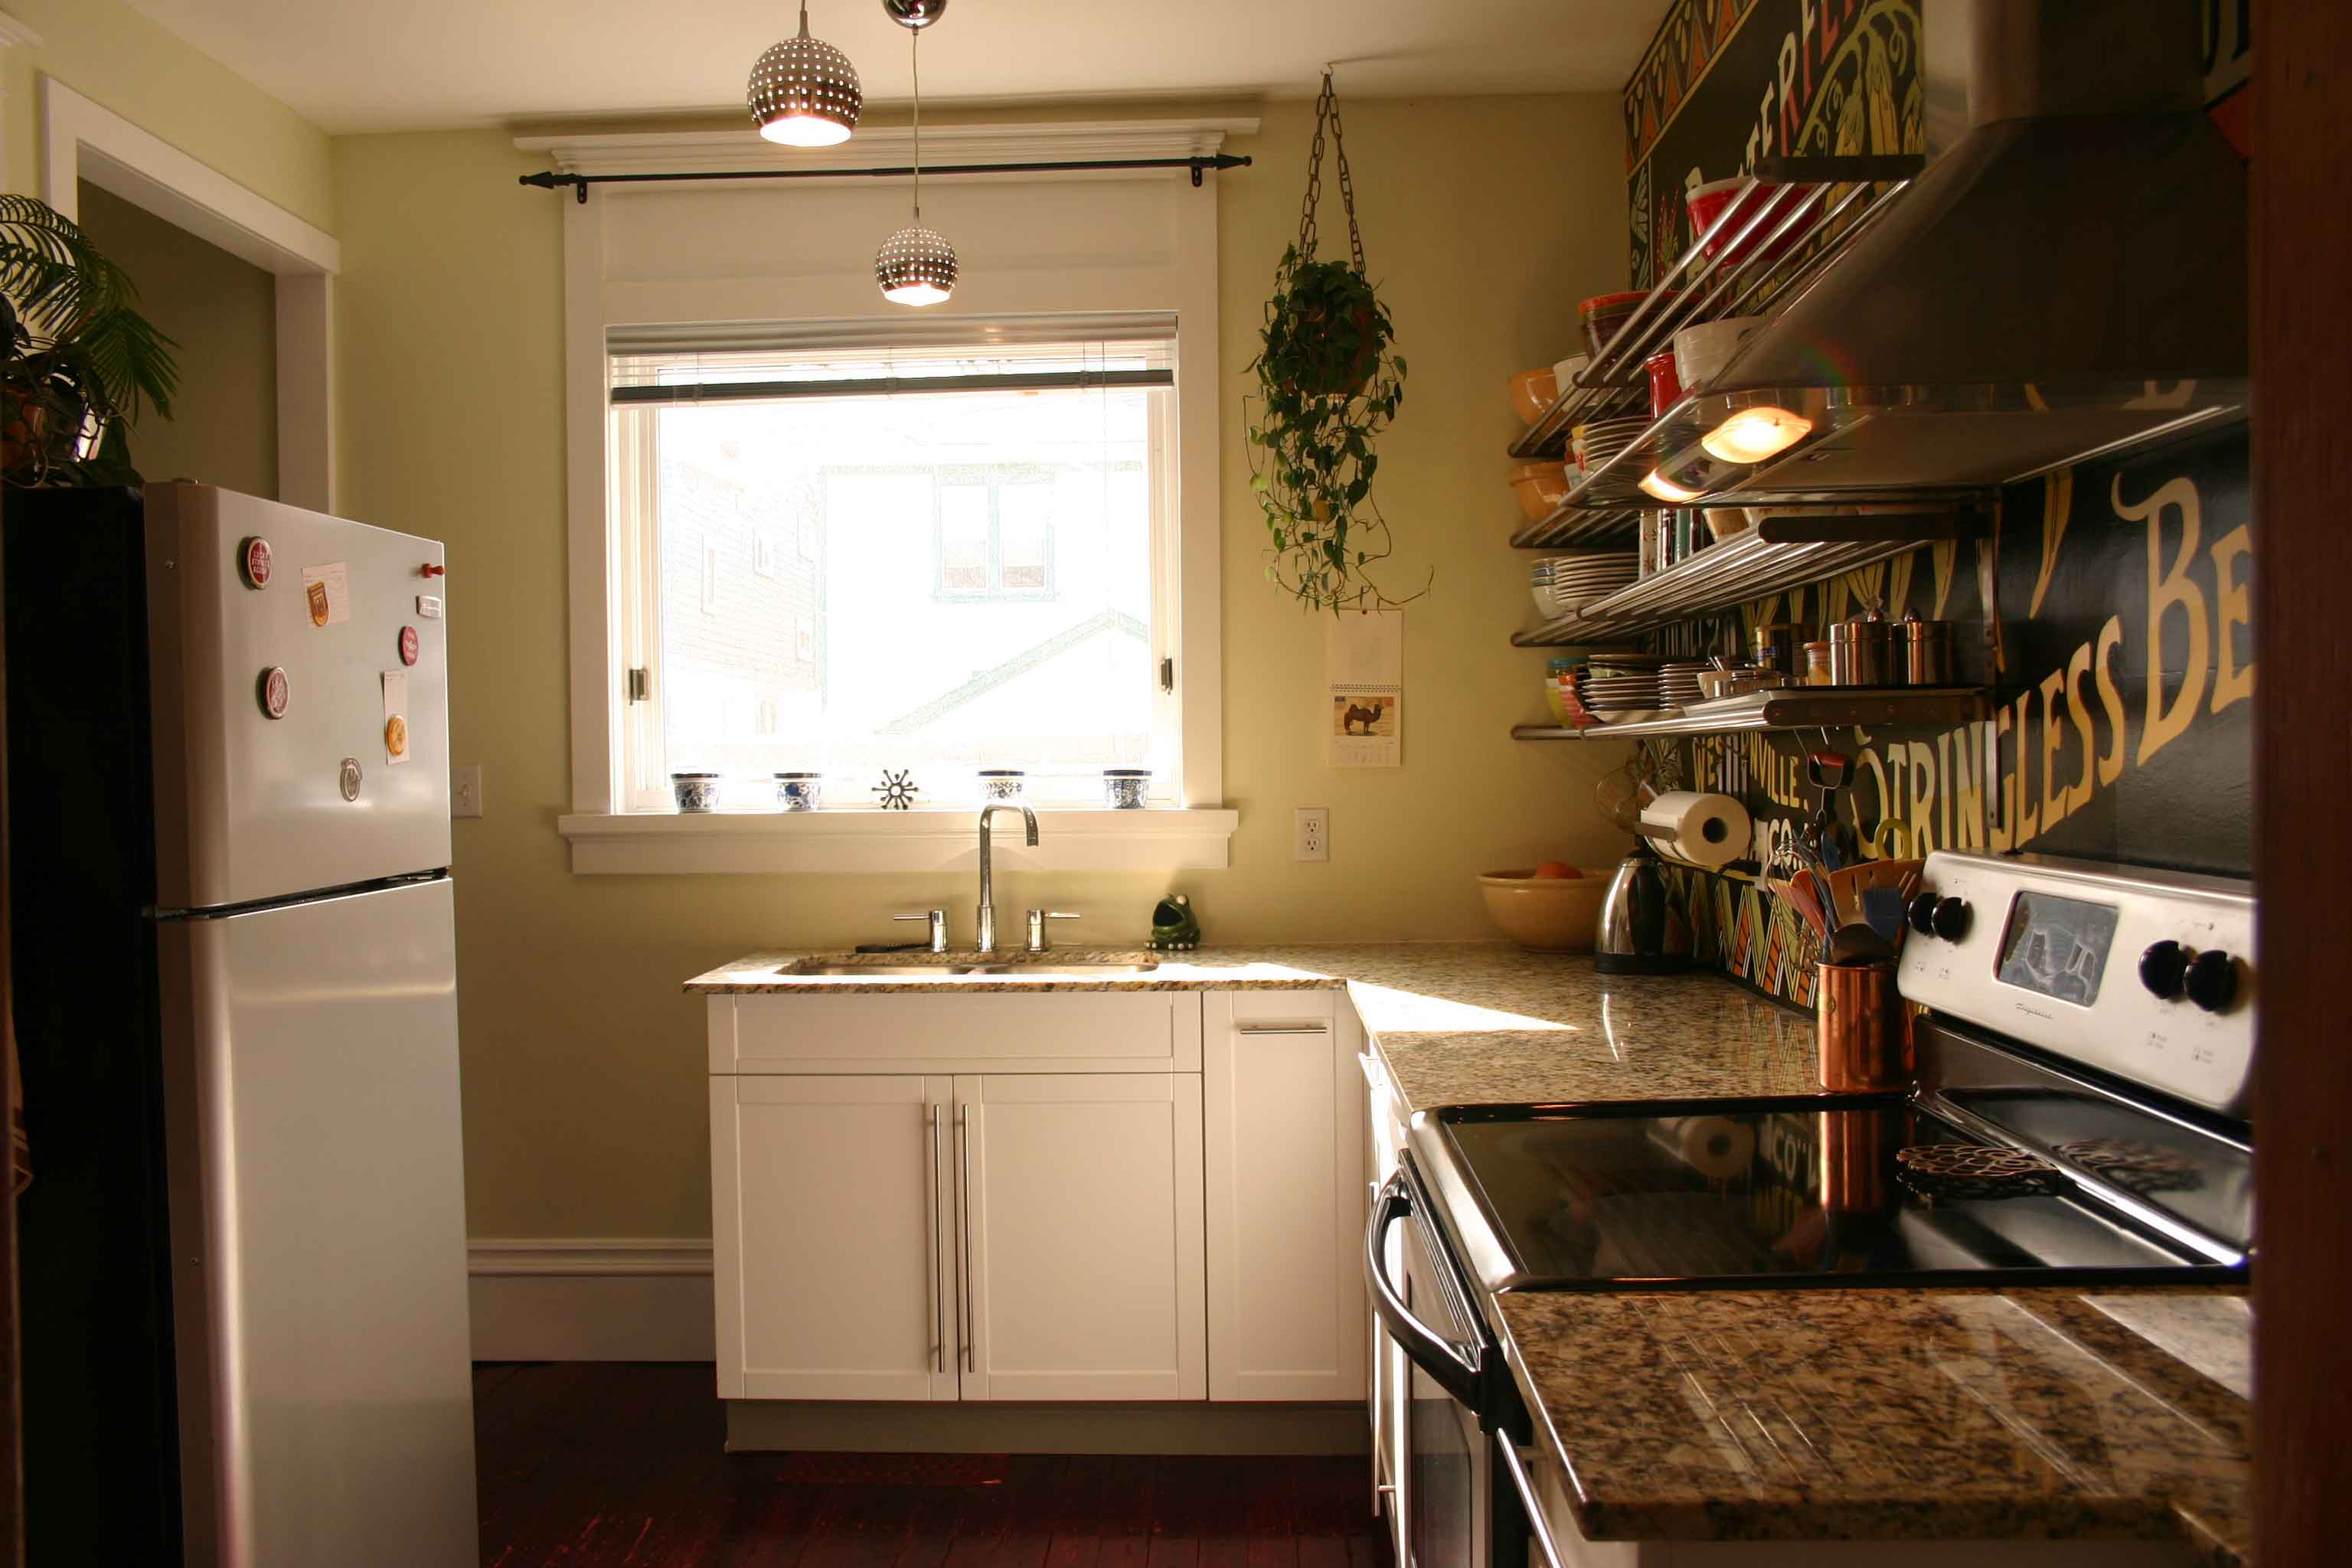 Fully Renovated Kitchen In A House In Winnipeg, Manitoba